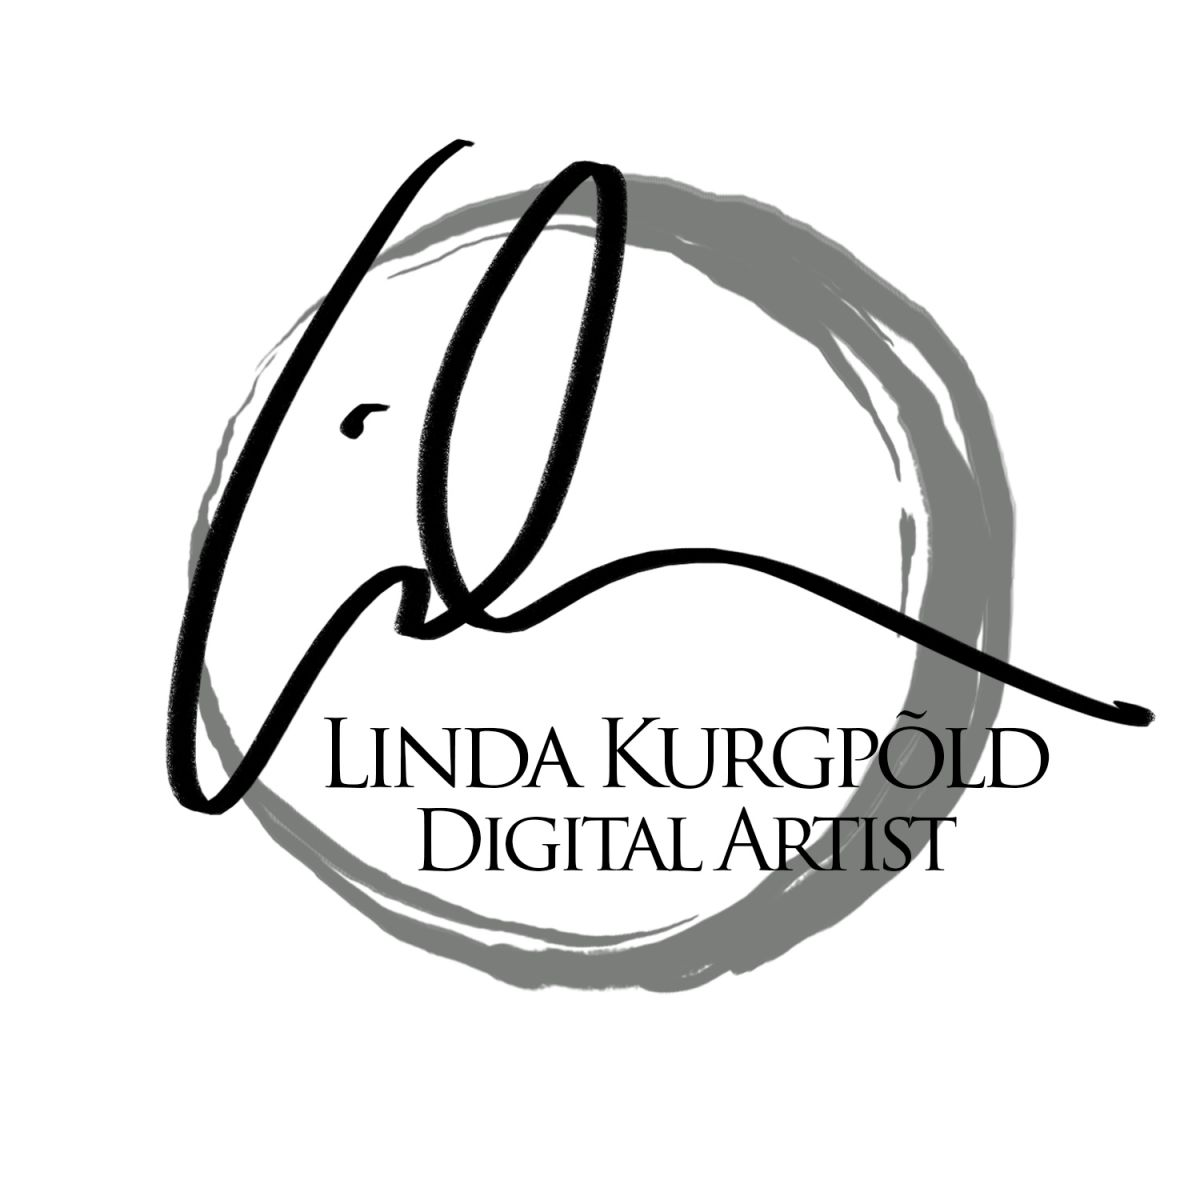 lindakurgpold-digitalartist